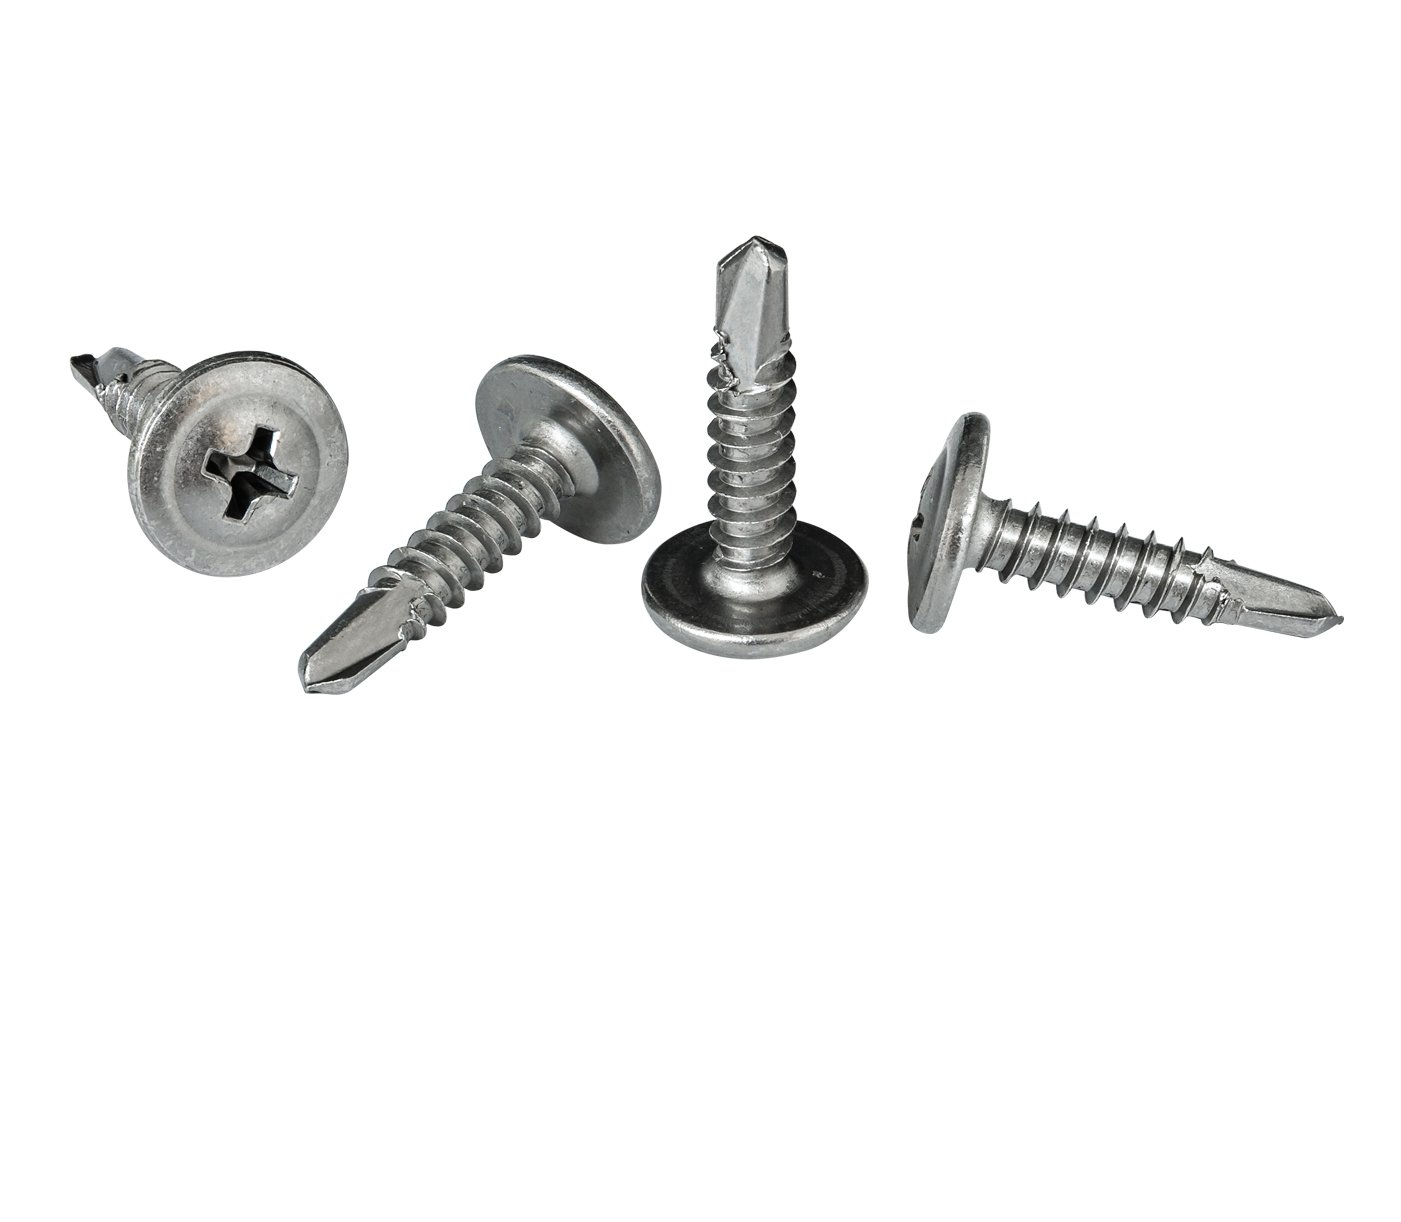 #8 x 3/4'' Phillips Modified Truss Head Self-Drilling Tek Screw, 410 Stainless Steel for Attaches Steel, Stainless Steel, Sheet Metal - Box of 100